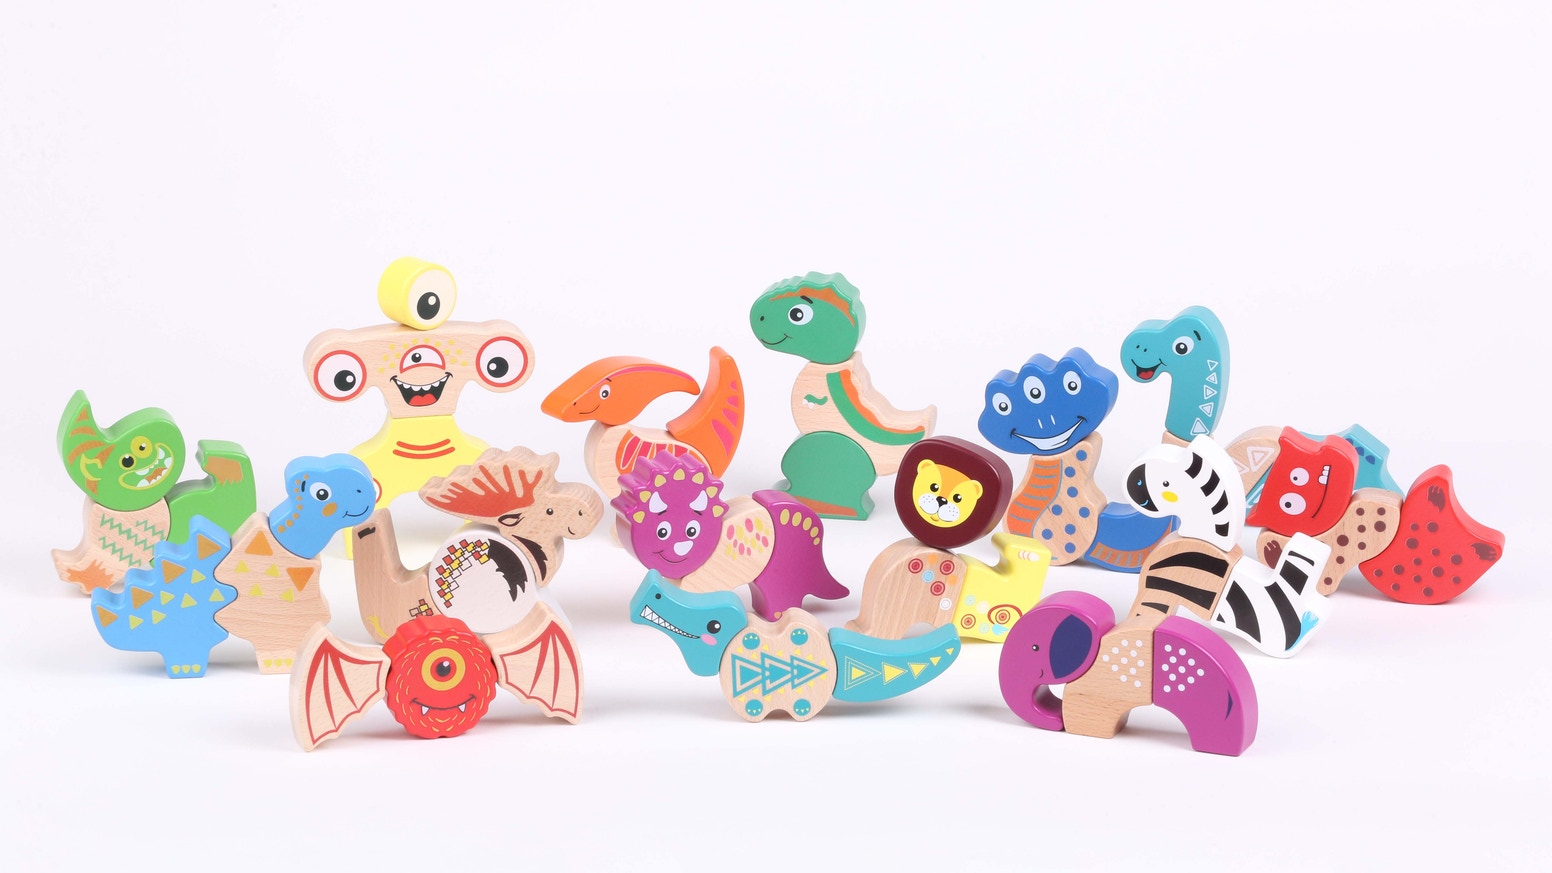 15 adorable characters, each consisting of 3 magnetic wooden blocks = multiple fun assembly solutions & endless play combinations.